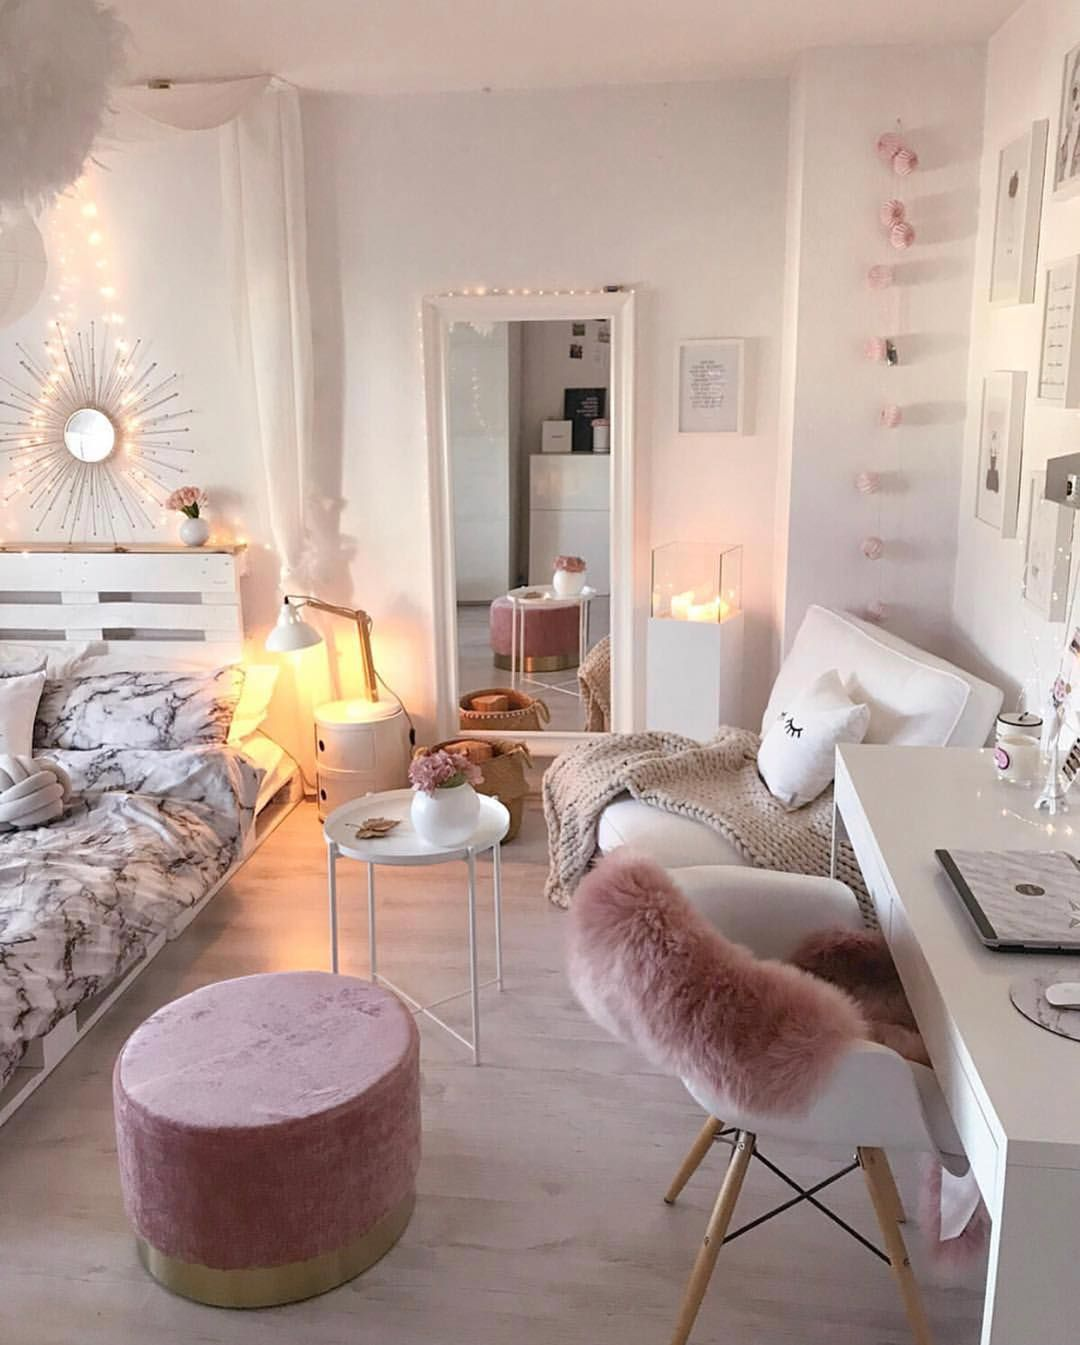 "My Favroom on Instagram: ""Wow"